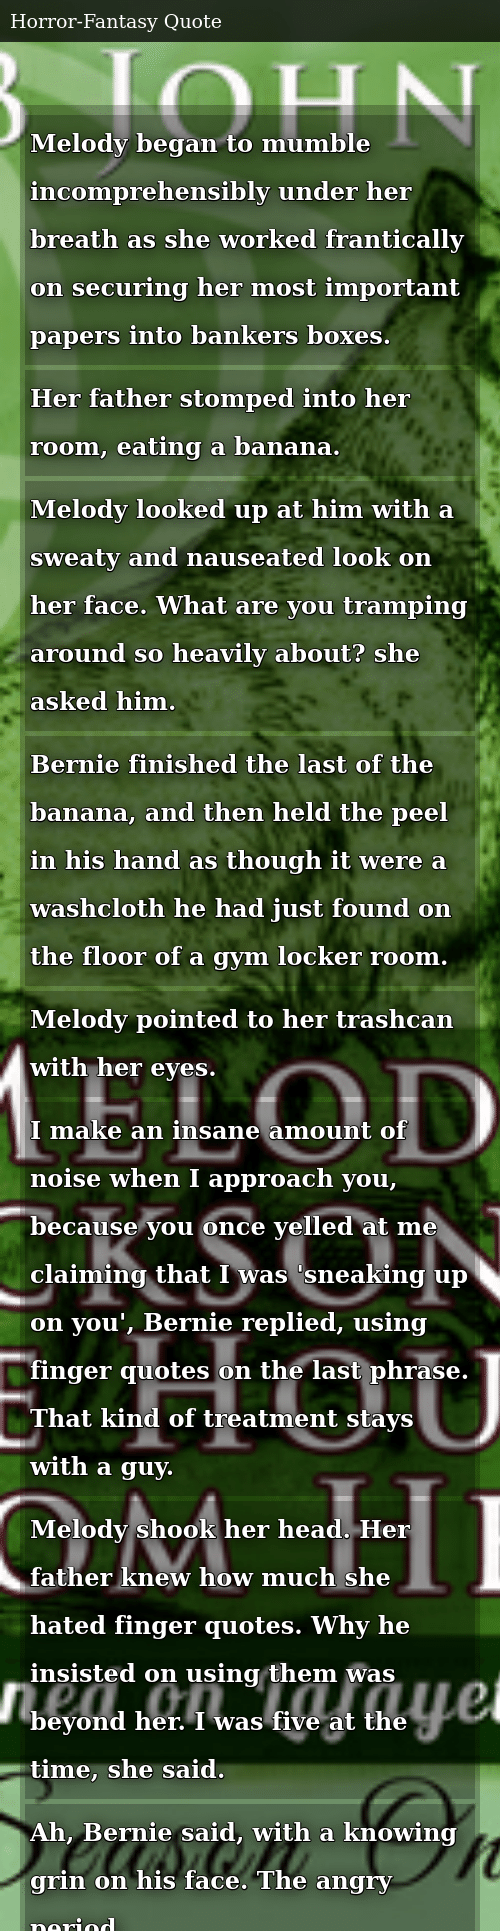 SIZZLE: Melody began to mumble incomprehensibly under her breath as she worked frantically on securing her most important papers into bankers boxes. Her father stomped into her room, eating a banana. Melody looked up at him with a sweaty and nauseated look on her face. What are you tramping around so heavily about? she asked him. Bernie finished the last of the banana, and then held the peel in his hand as though it were a washcloth he had just found on the floor of a gym locker room. Melody pointed to her trashcan with her eyes. I make an insane amount of noise when I approach you, because you once yelled at me claiming that I was 'sneaking up on you', Bernie replied, using finger quotes on the last phrase. That kind of treatment stays with a guy. Melody shook her head. Her father knew how much she hated finger quotes. Why he insisted on using them was beyond her. I was five at the time, she said. Ah, Bernie said, with a knowing grin on his face. The angry period.